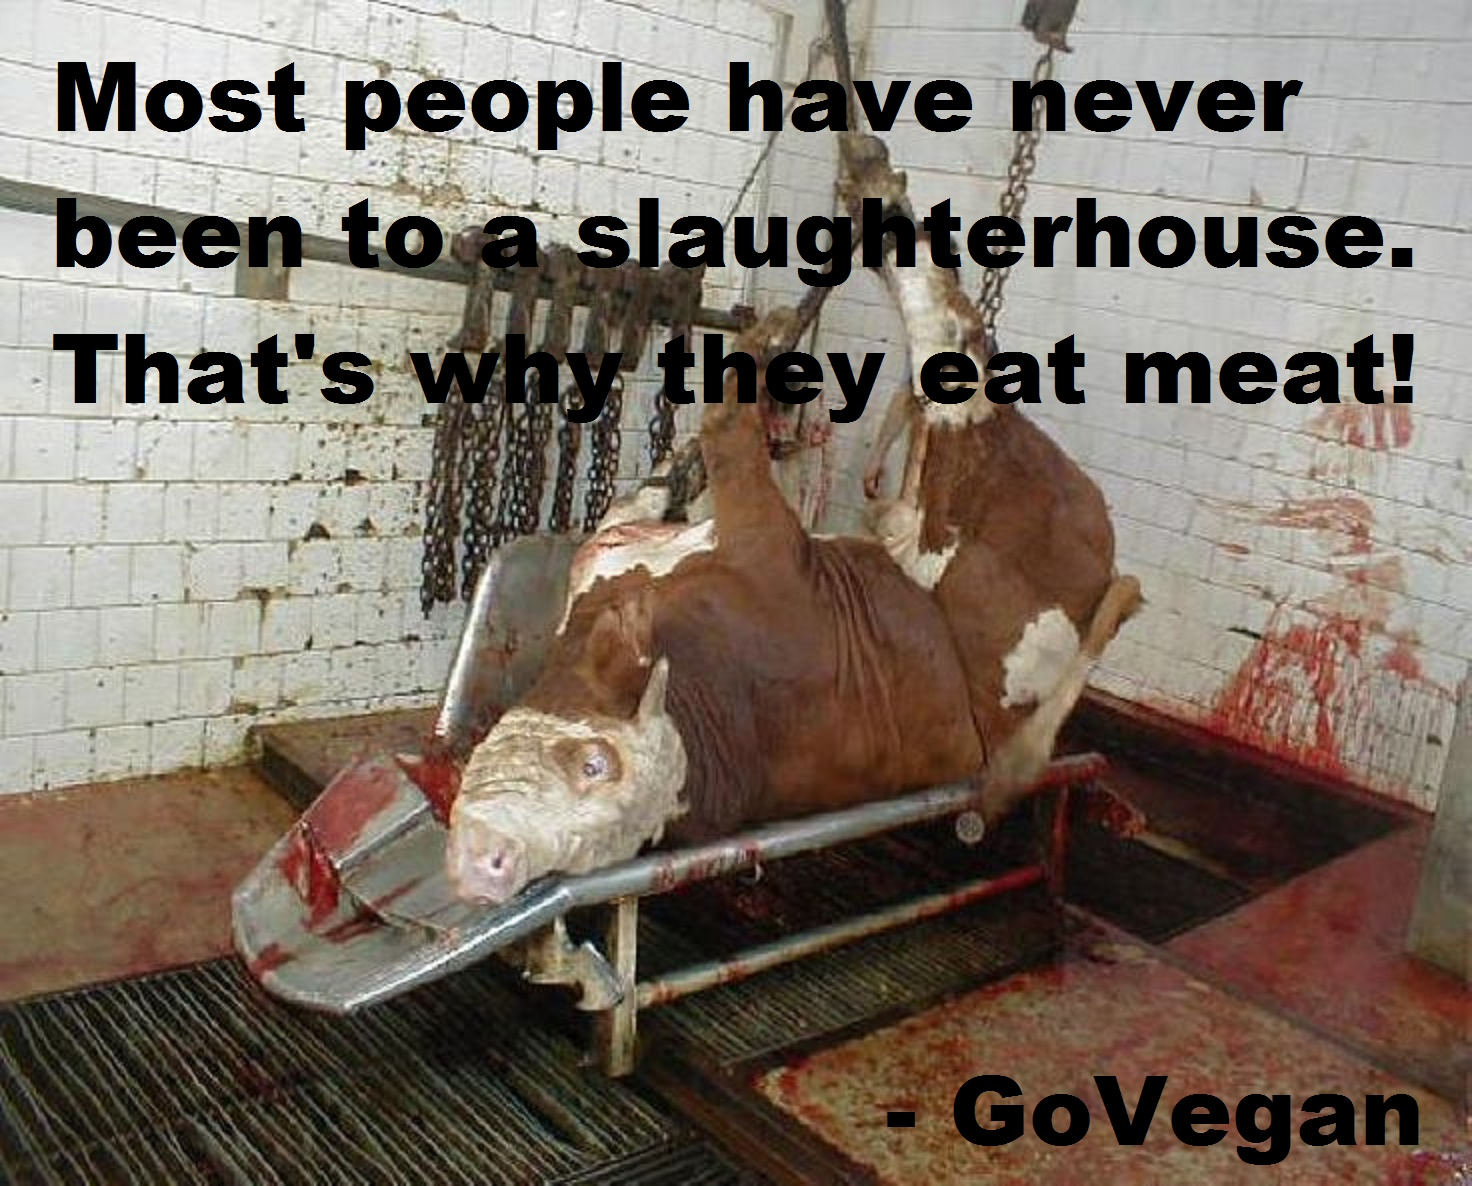 Most people have never been to a slaughterhouse. That's why they eat meat.